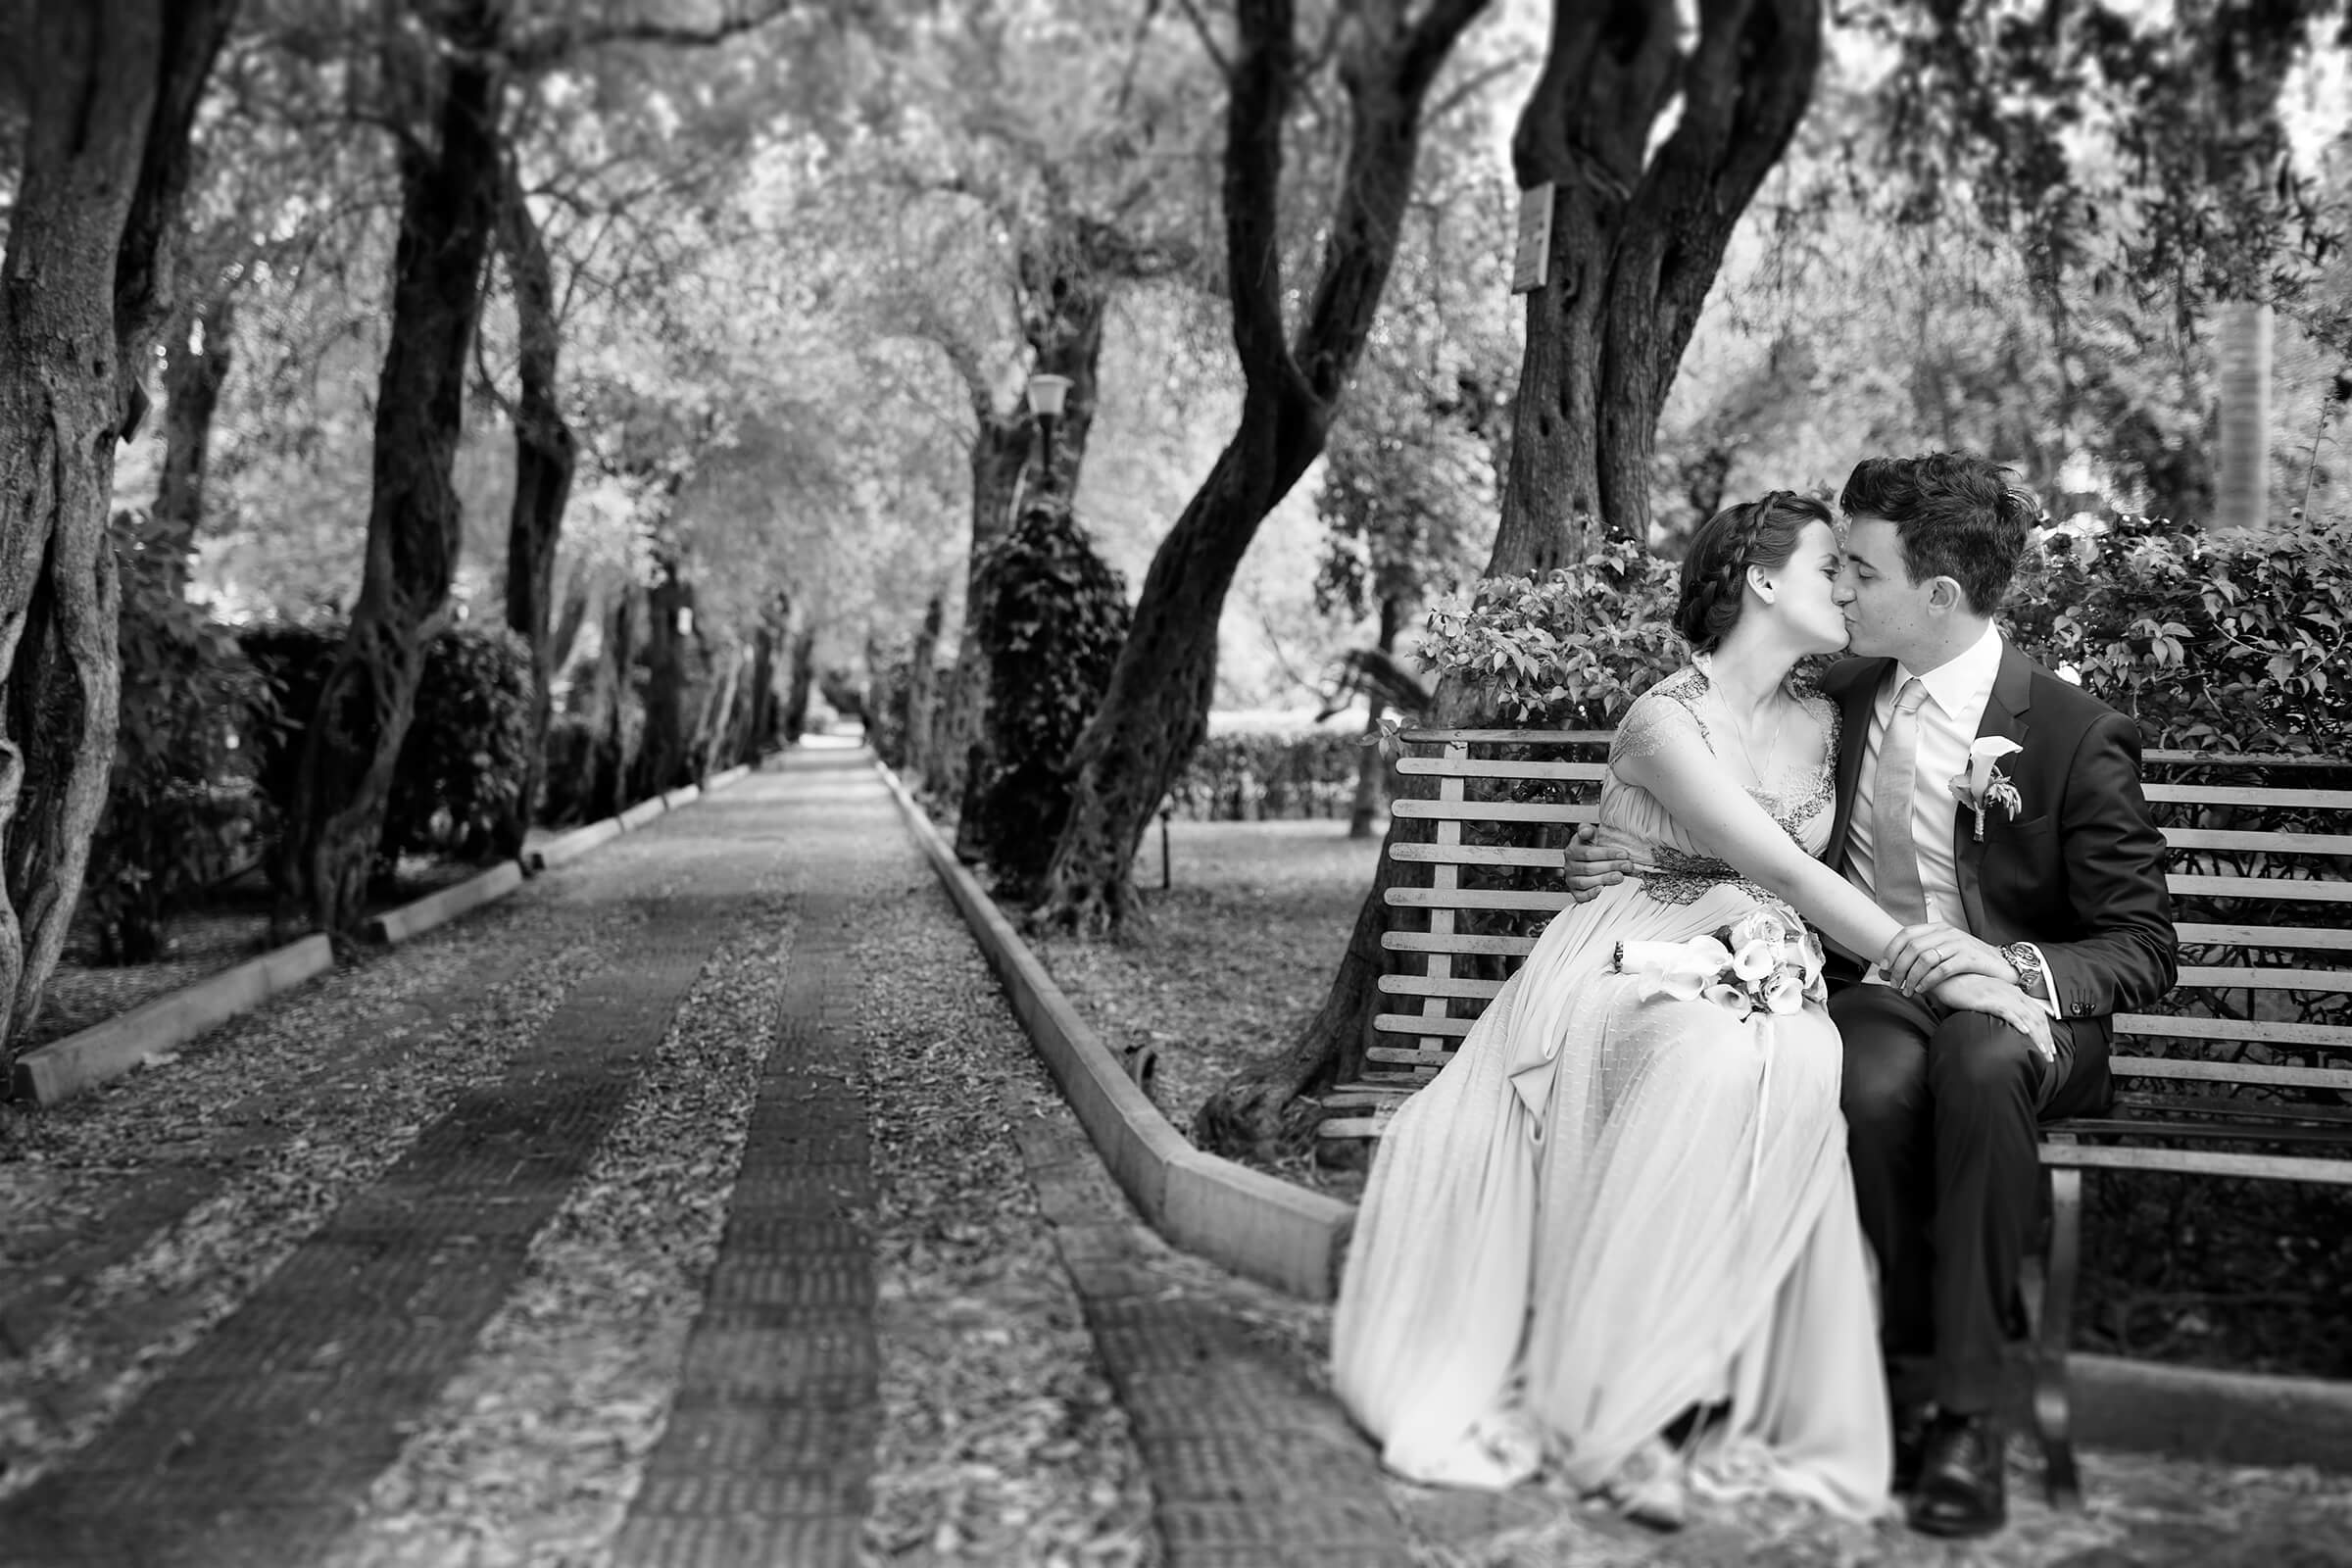 Romantic couple on bench in landscape setting - photo by Nino Lombardo Photographer